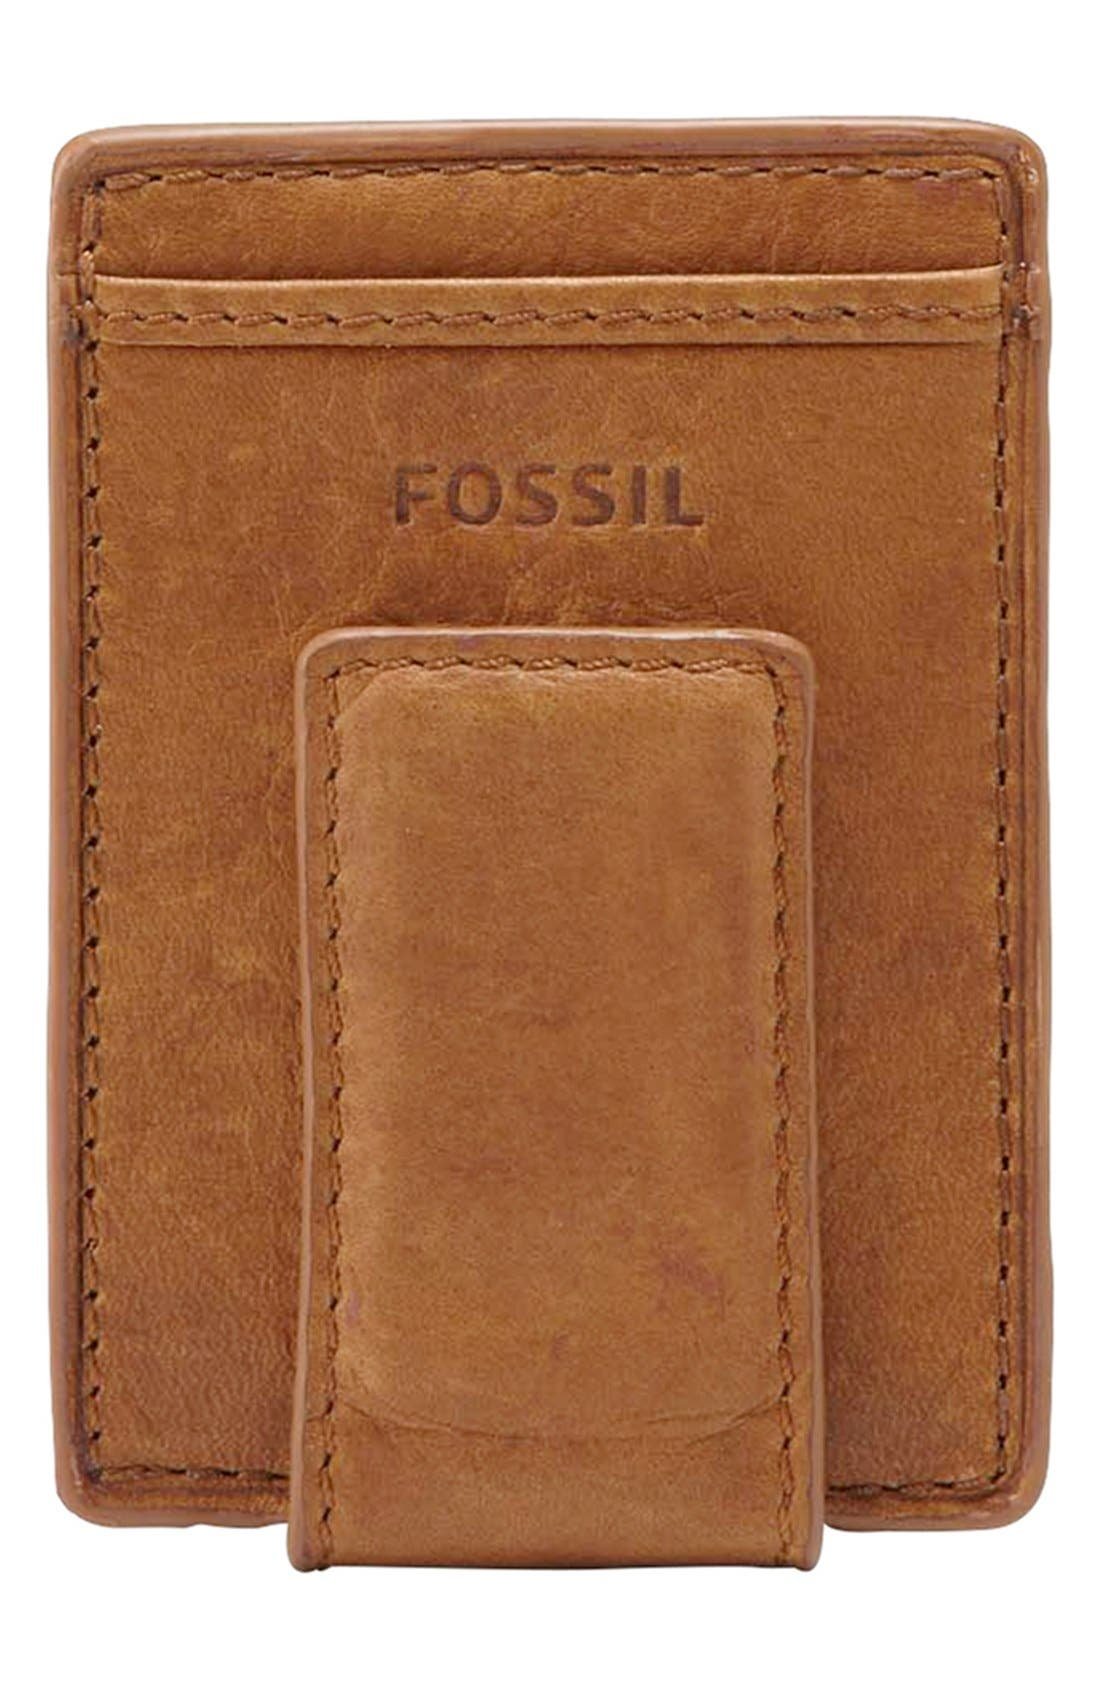 Main Image - Fossil 'Ingram' Leather Magnetic Money Clip Card Case